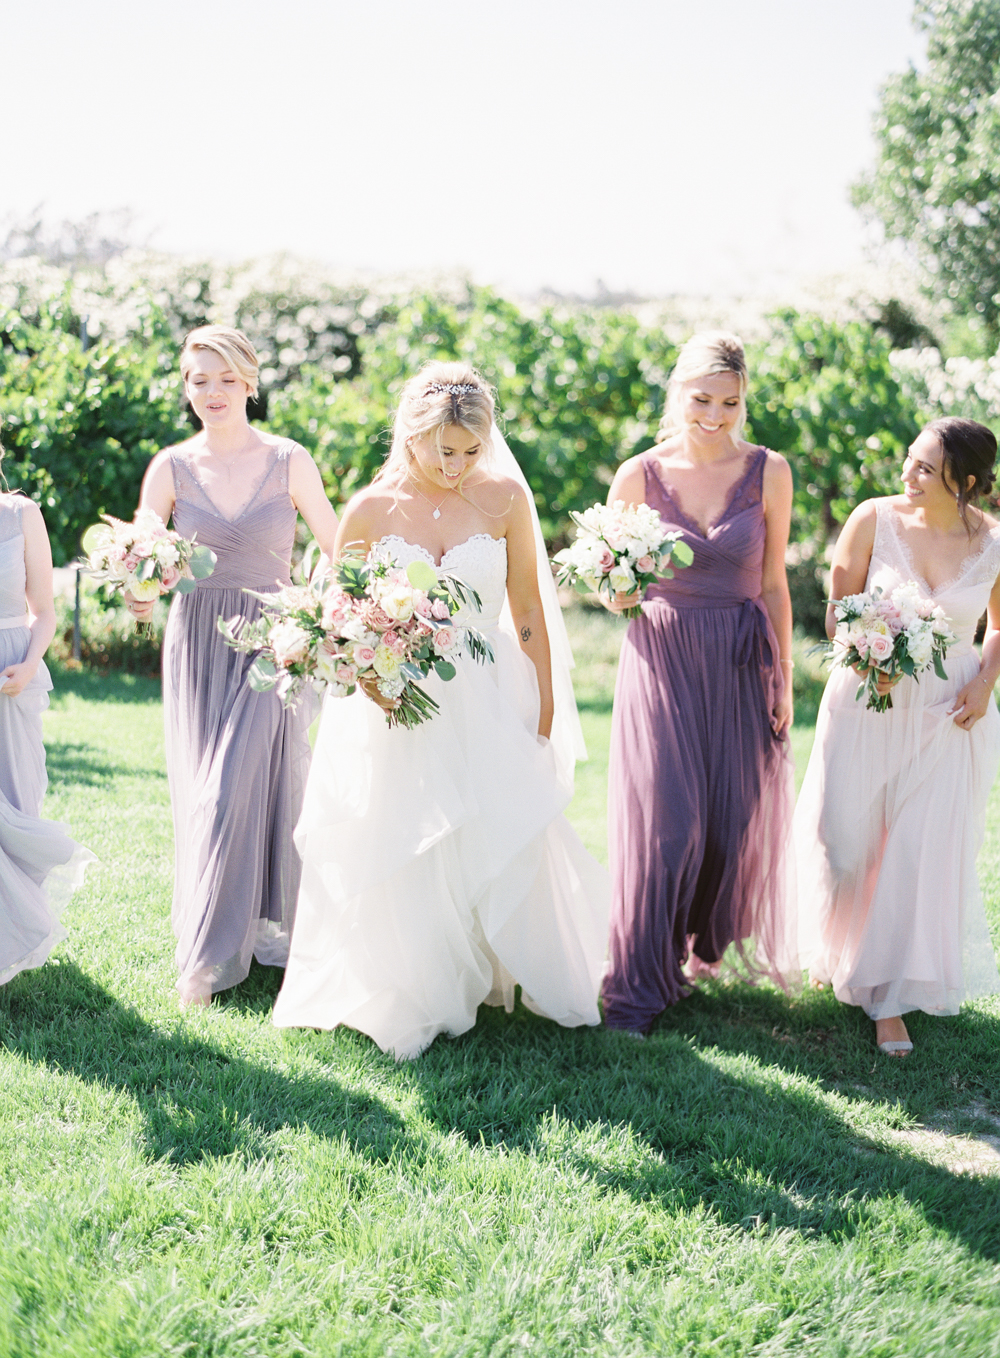 Lavender bridesmaids BHLDN | Posh Peony bridal bouquet | Mount Palomar Winery Wedding | Blush and Lavender | San Diego wedding photographer | Temecula wedding photographer | Southern California film photographer | Whiskers and Willow Photography